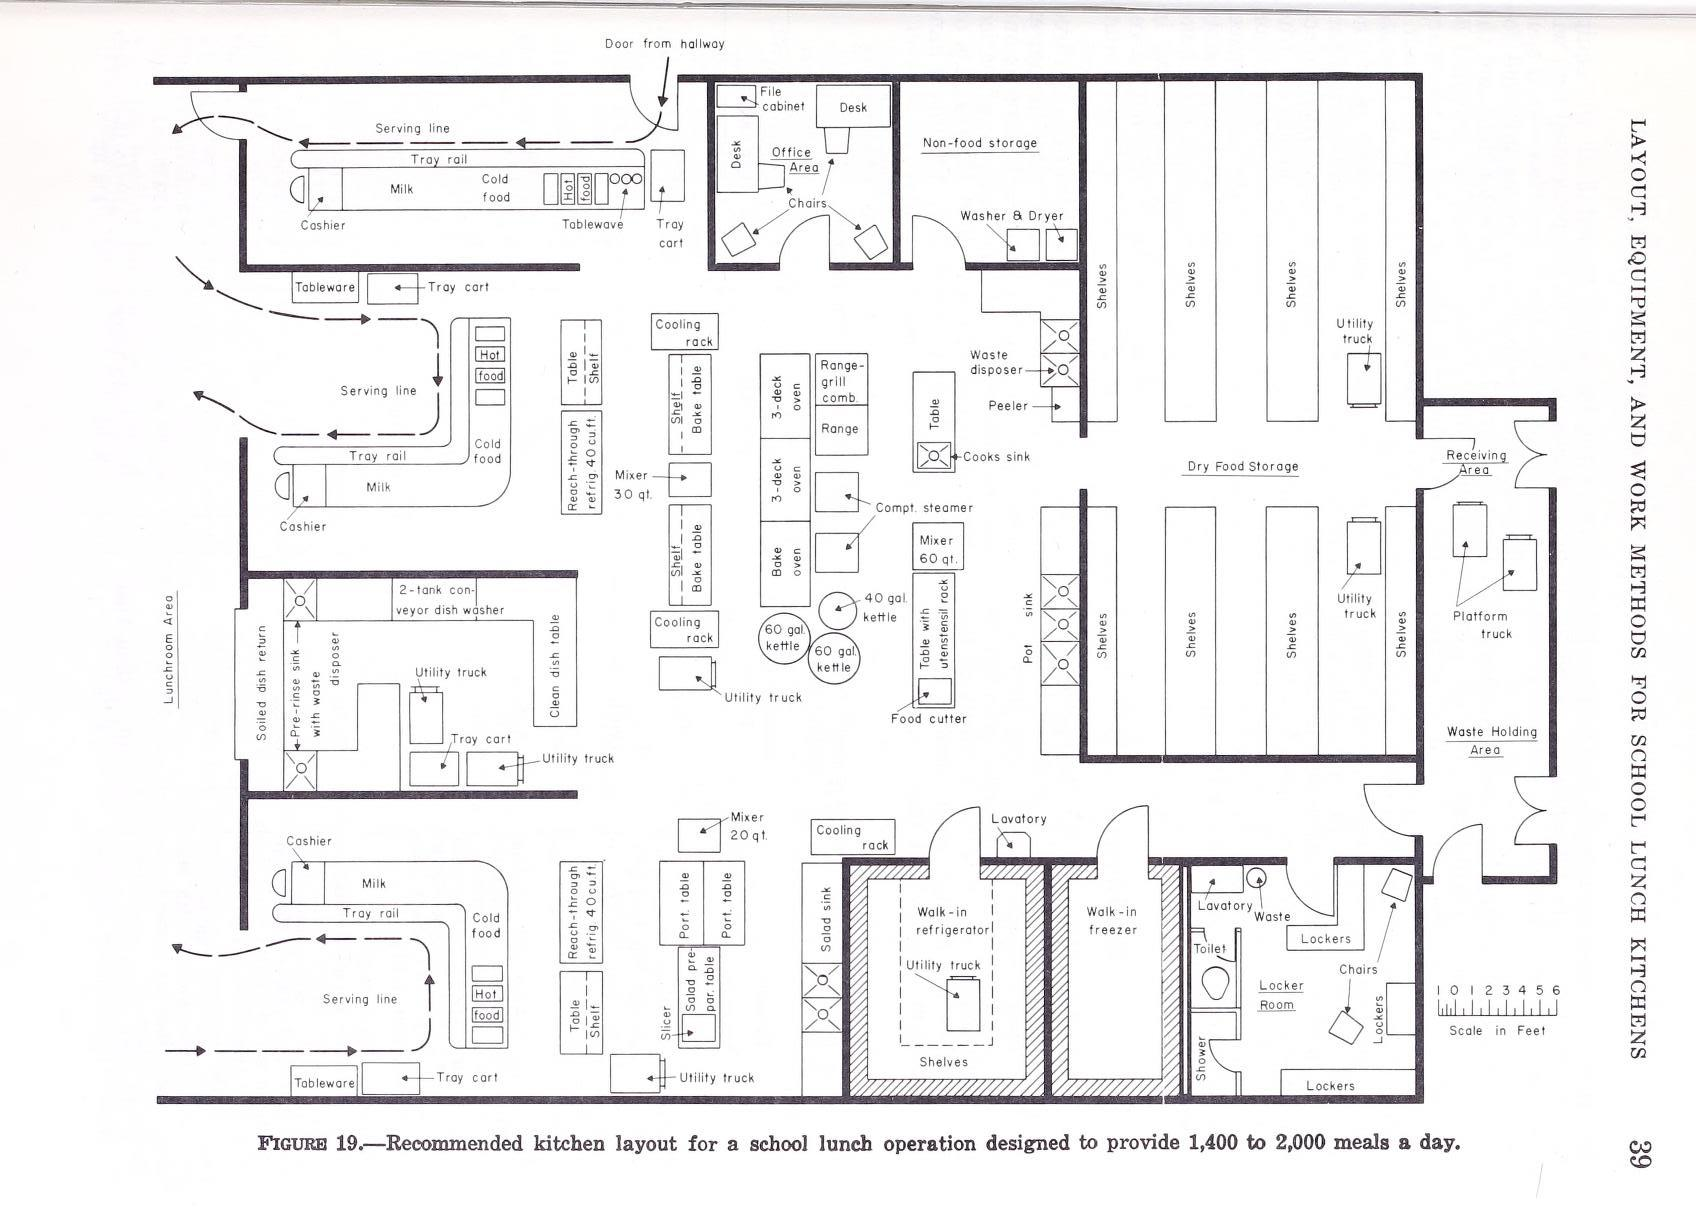 Apron Strings and Kitchen Sinks | Layout, Equipment, and Work ...